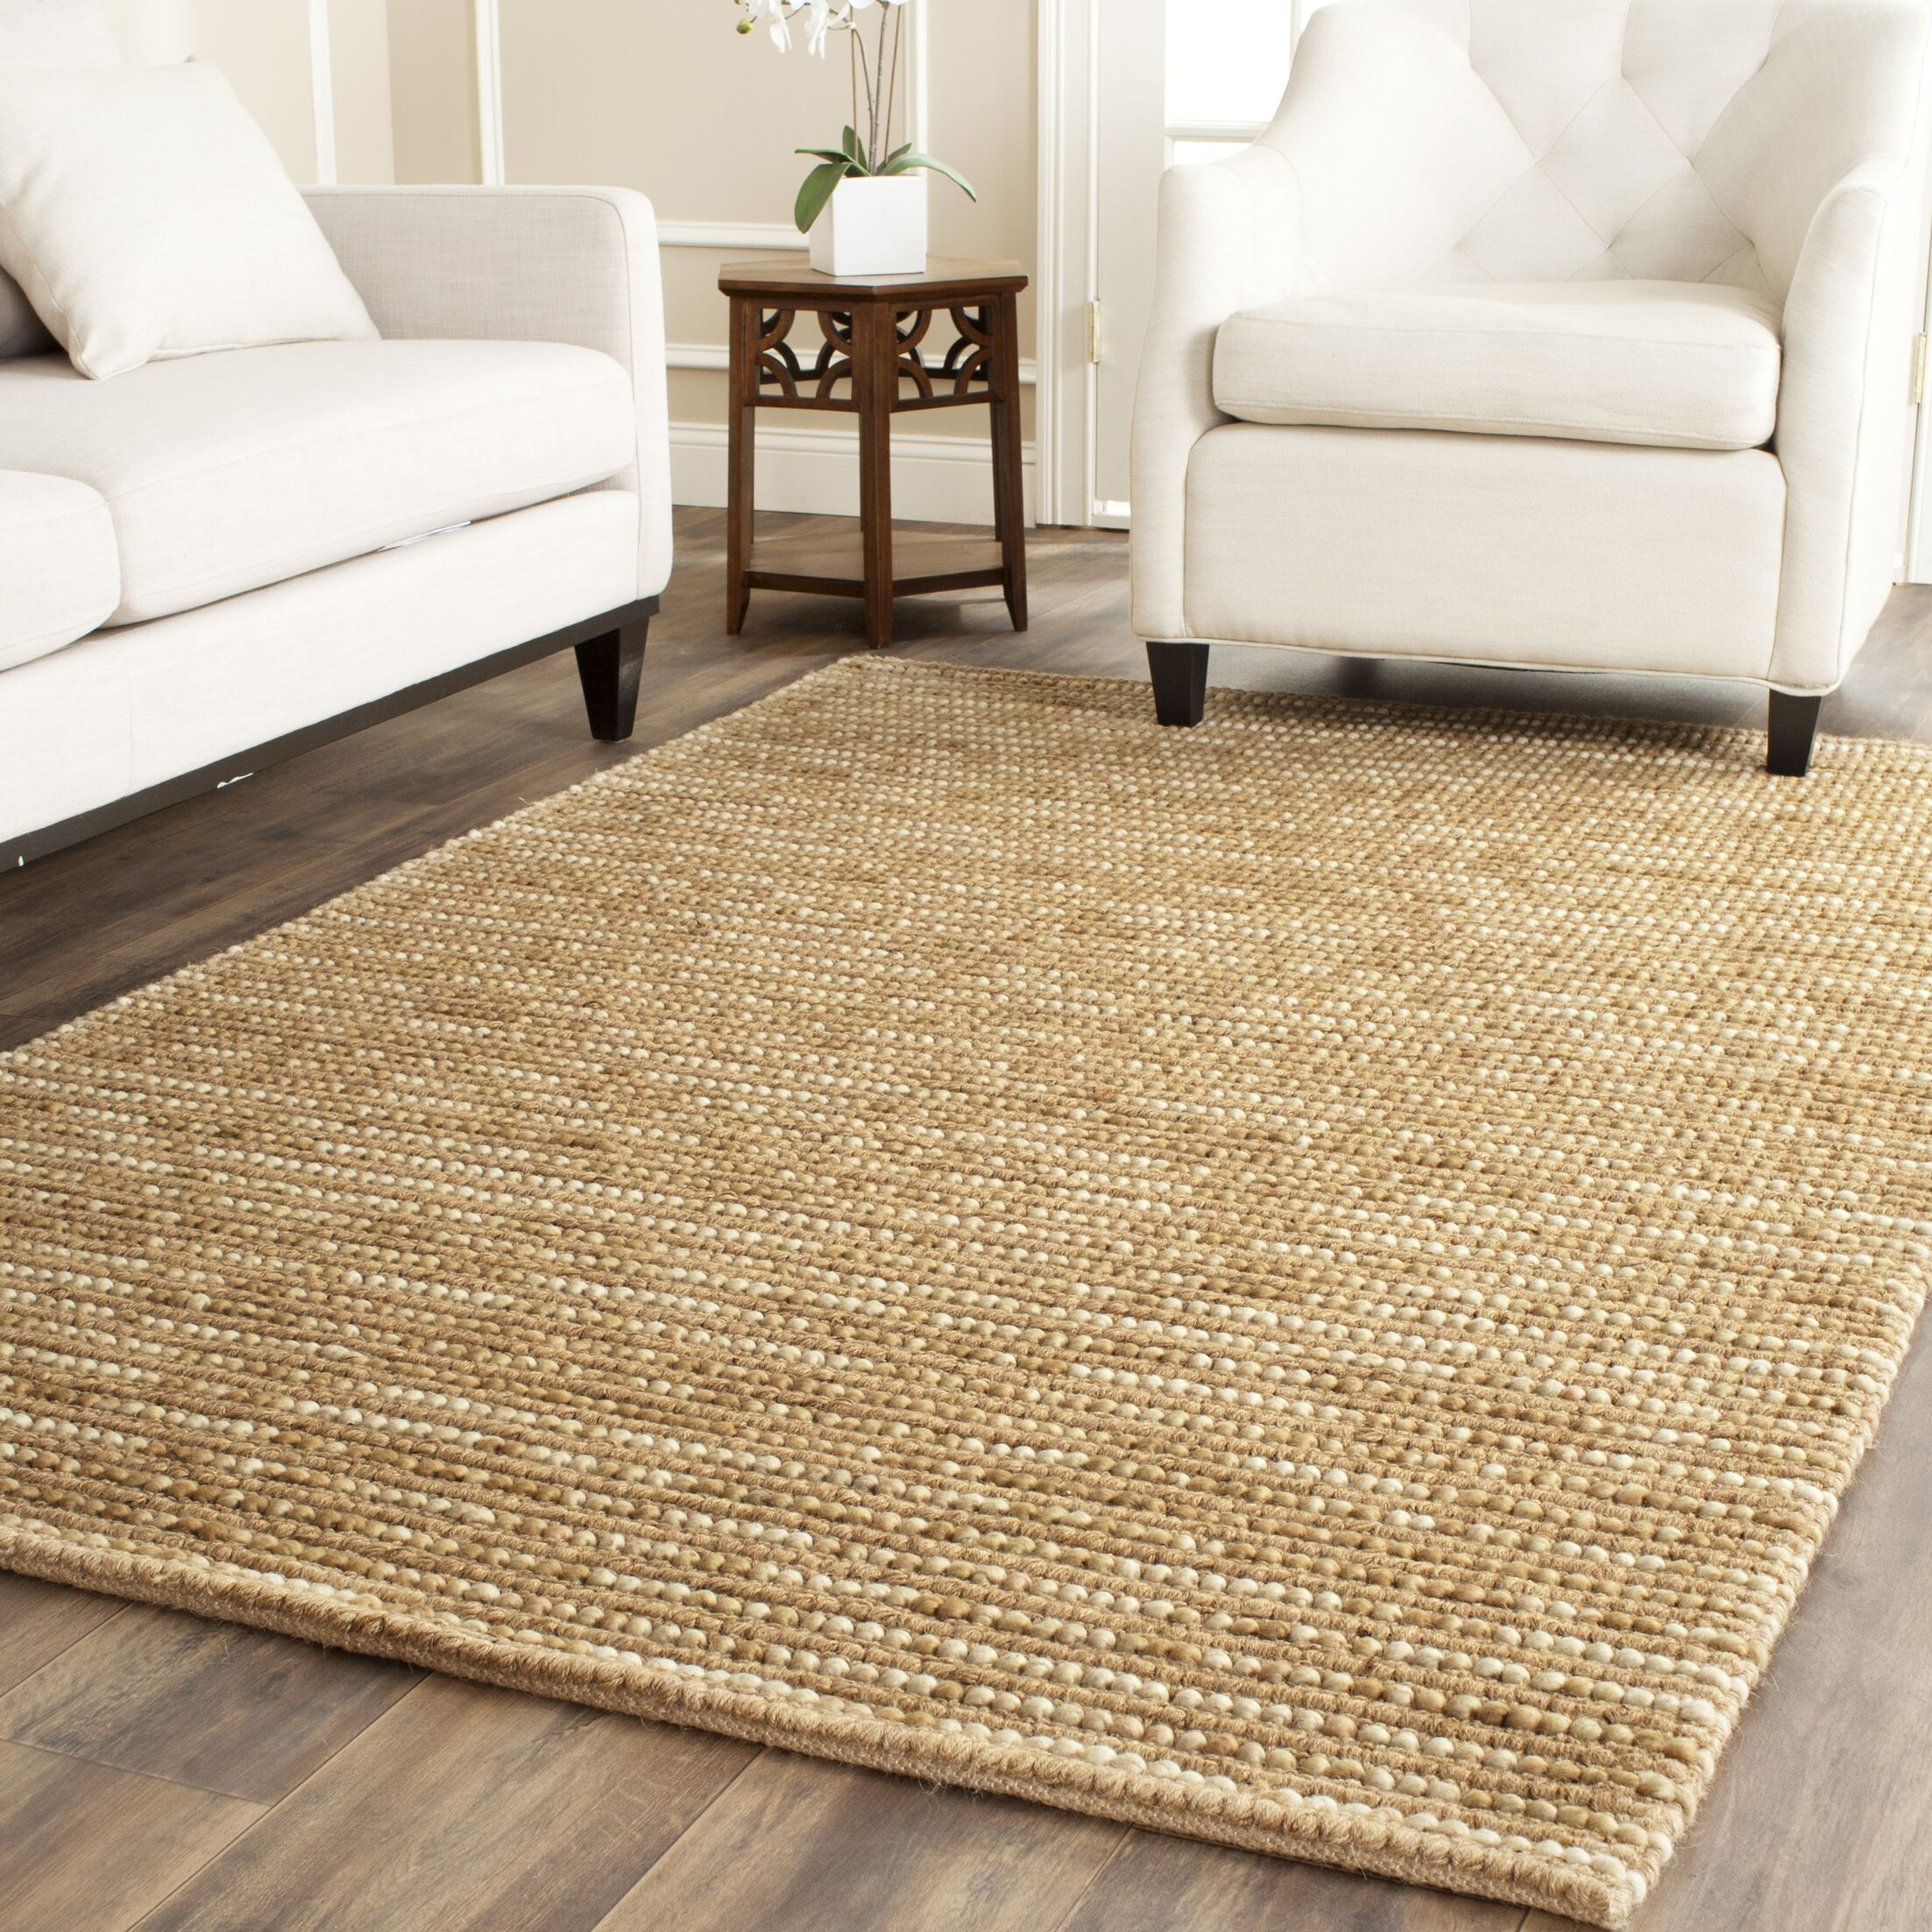 Makhi Flat Woven Beige Area Rug Rug Size: Rectangle 4' x 6'